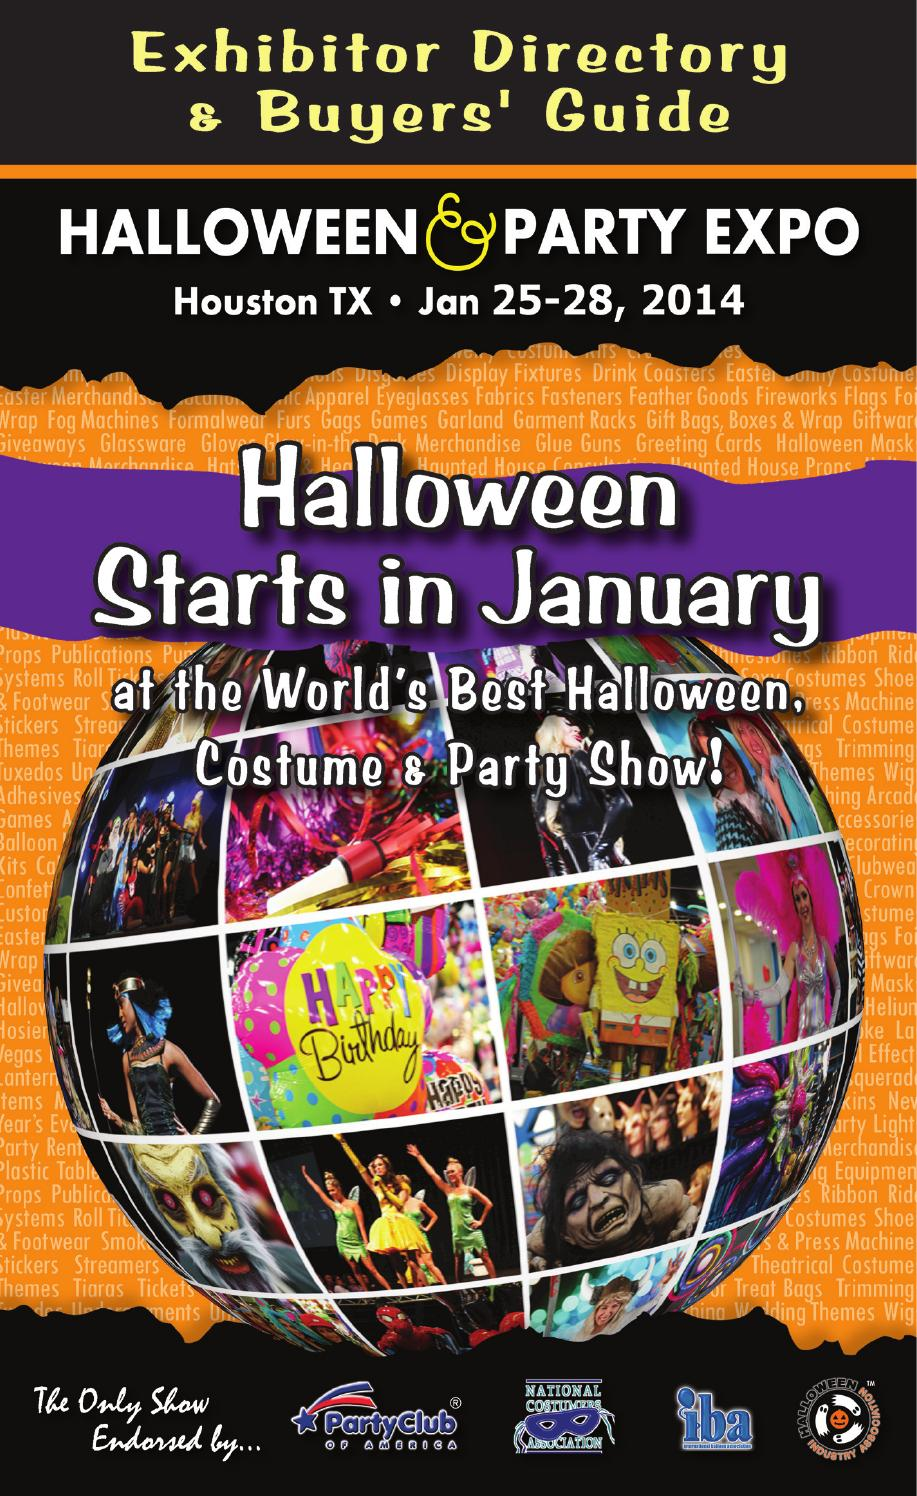 2014 Exhibitor Directory & Buyers' Guide by Halloween & Party Expo ...